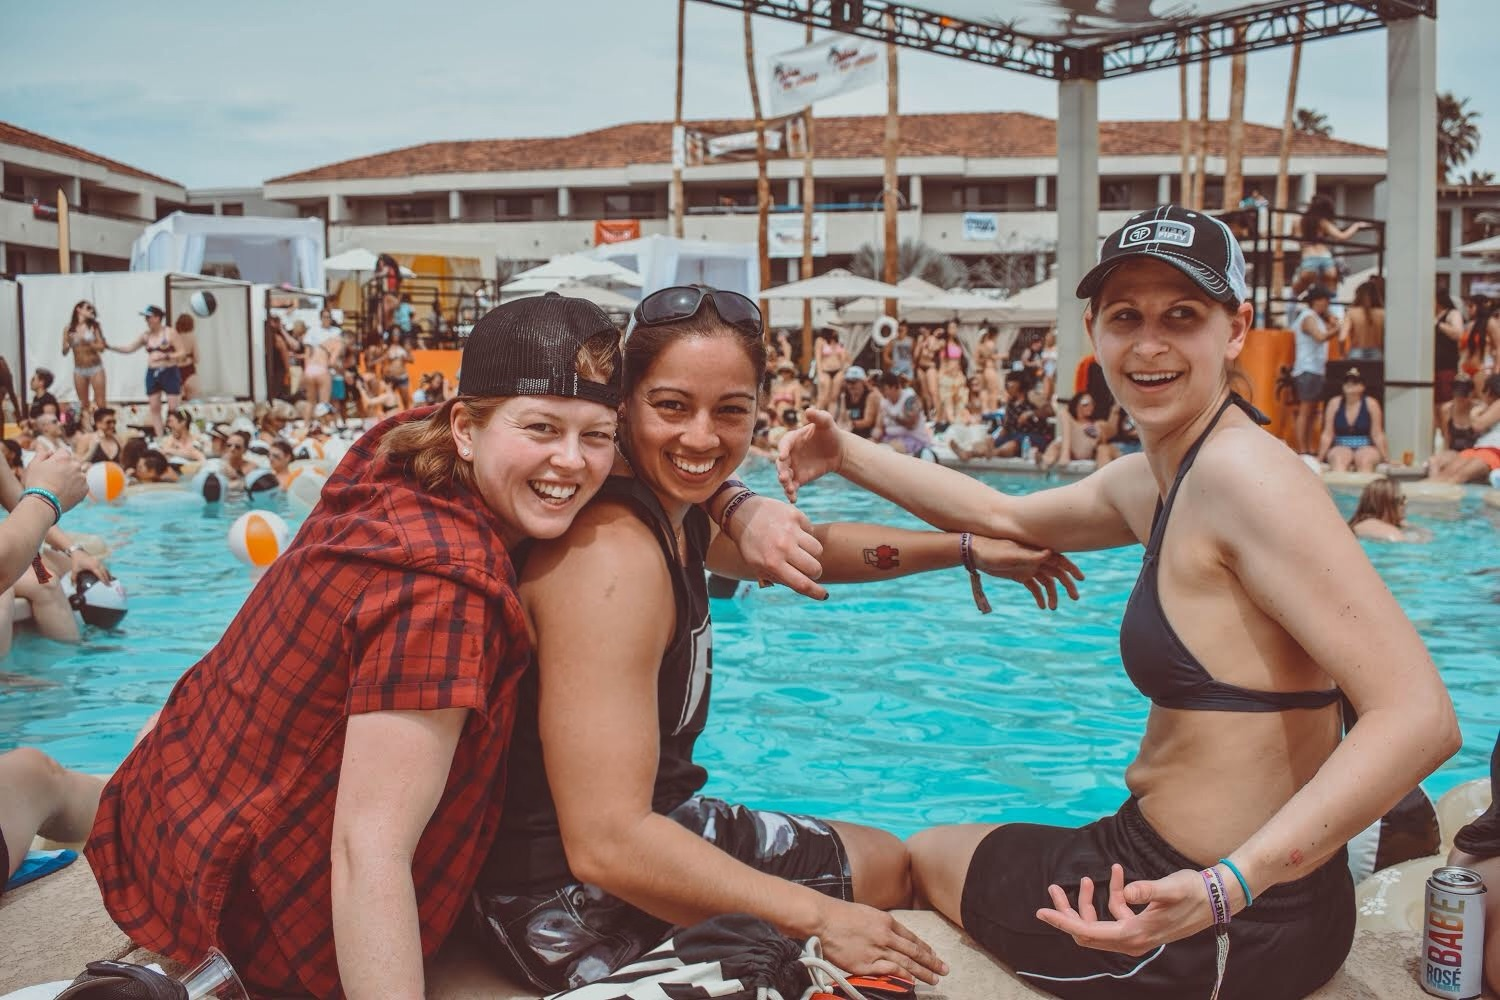 Three Lesbians At A Pool Dopes On The Road An Lgbt Travel Blog